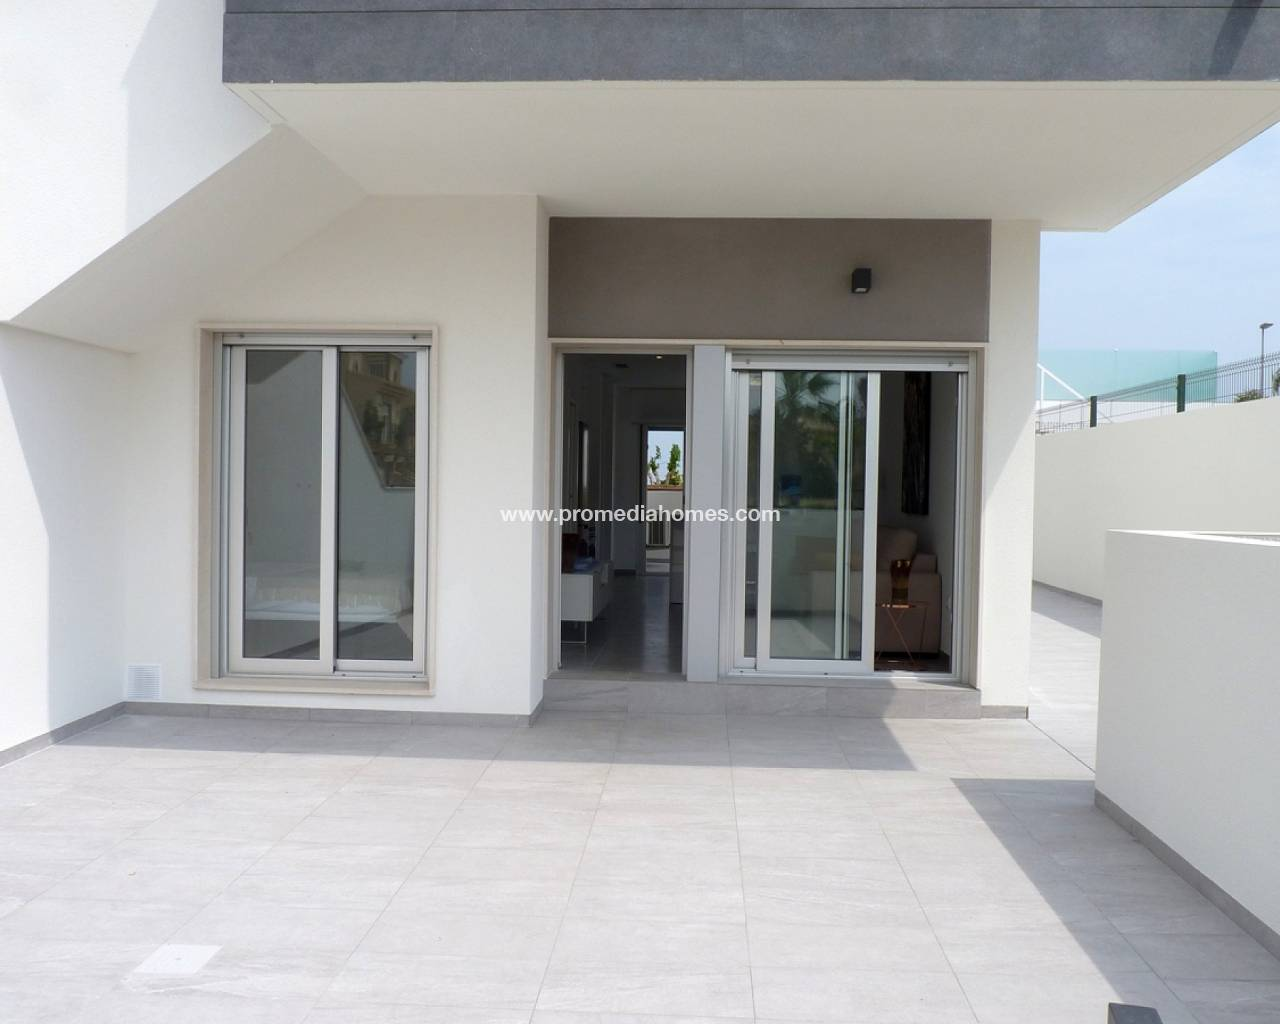 Buy bungalow for sale in Pilar de la Horadada